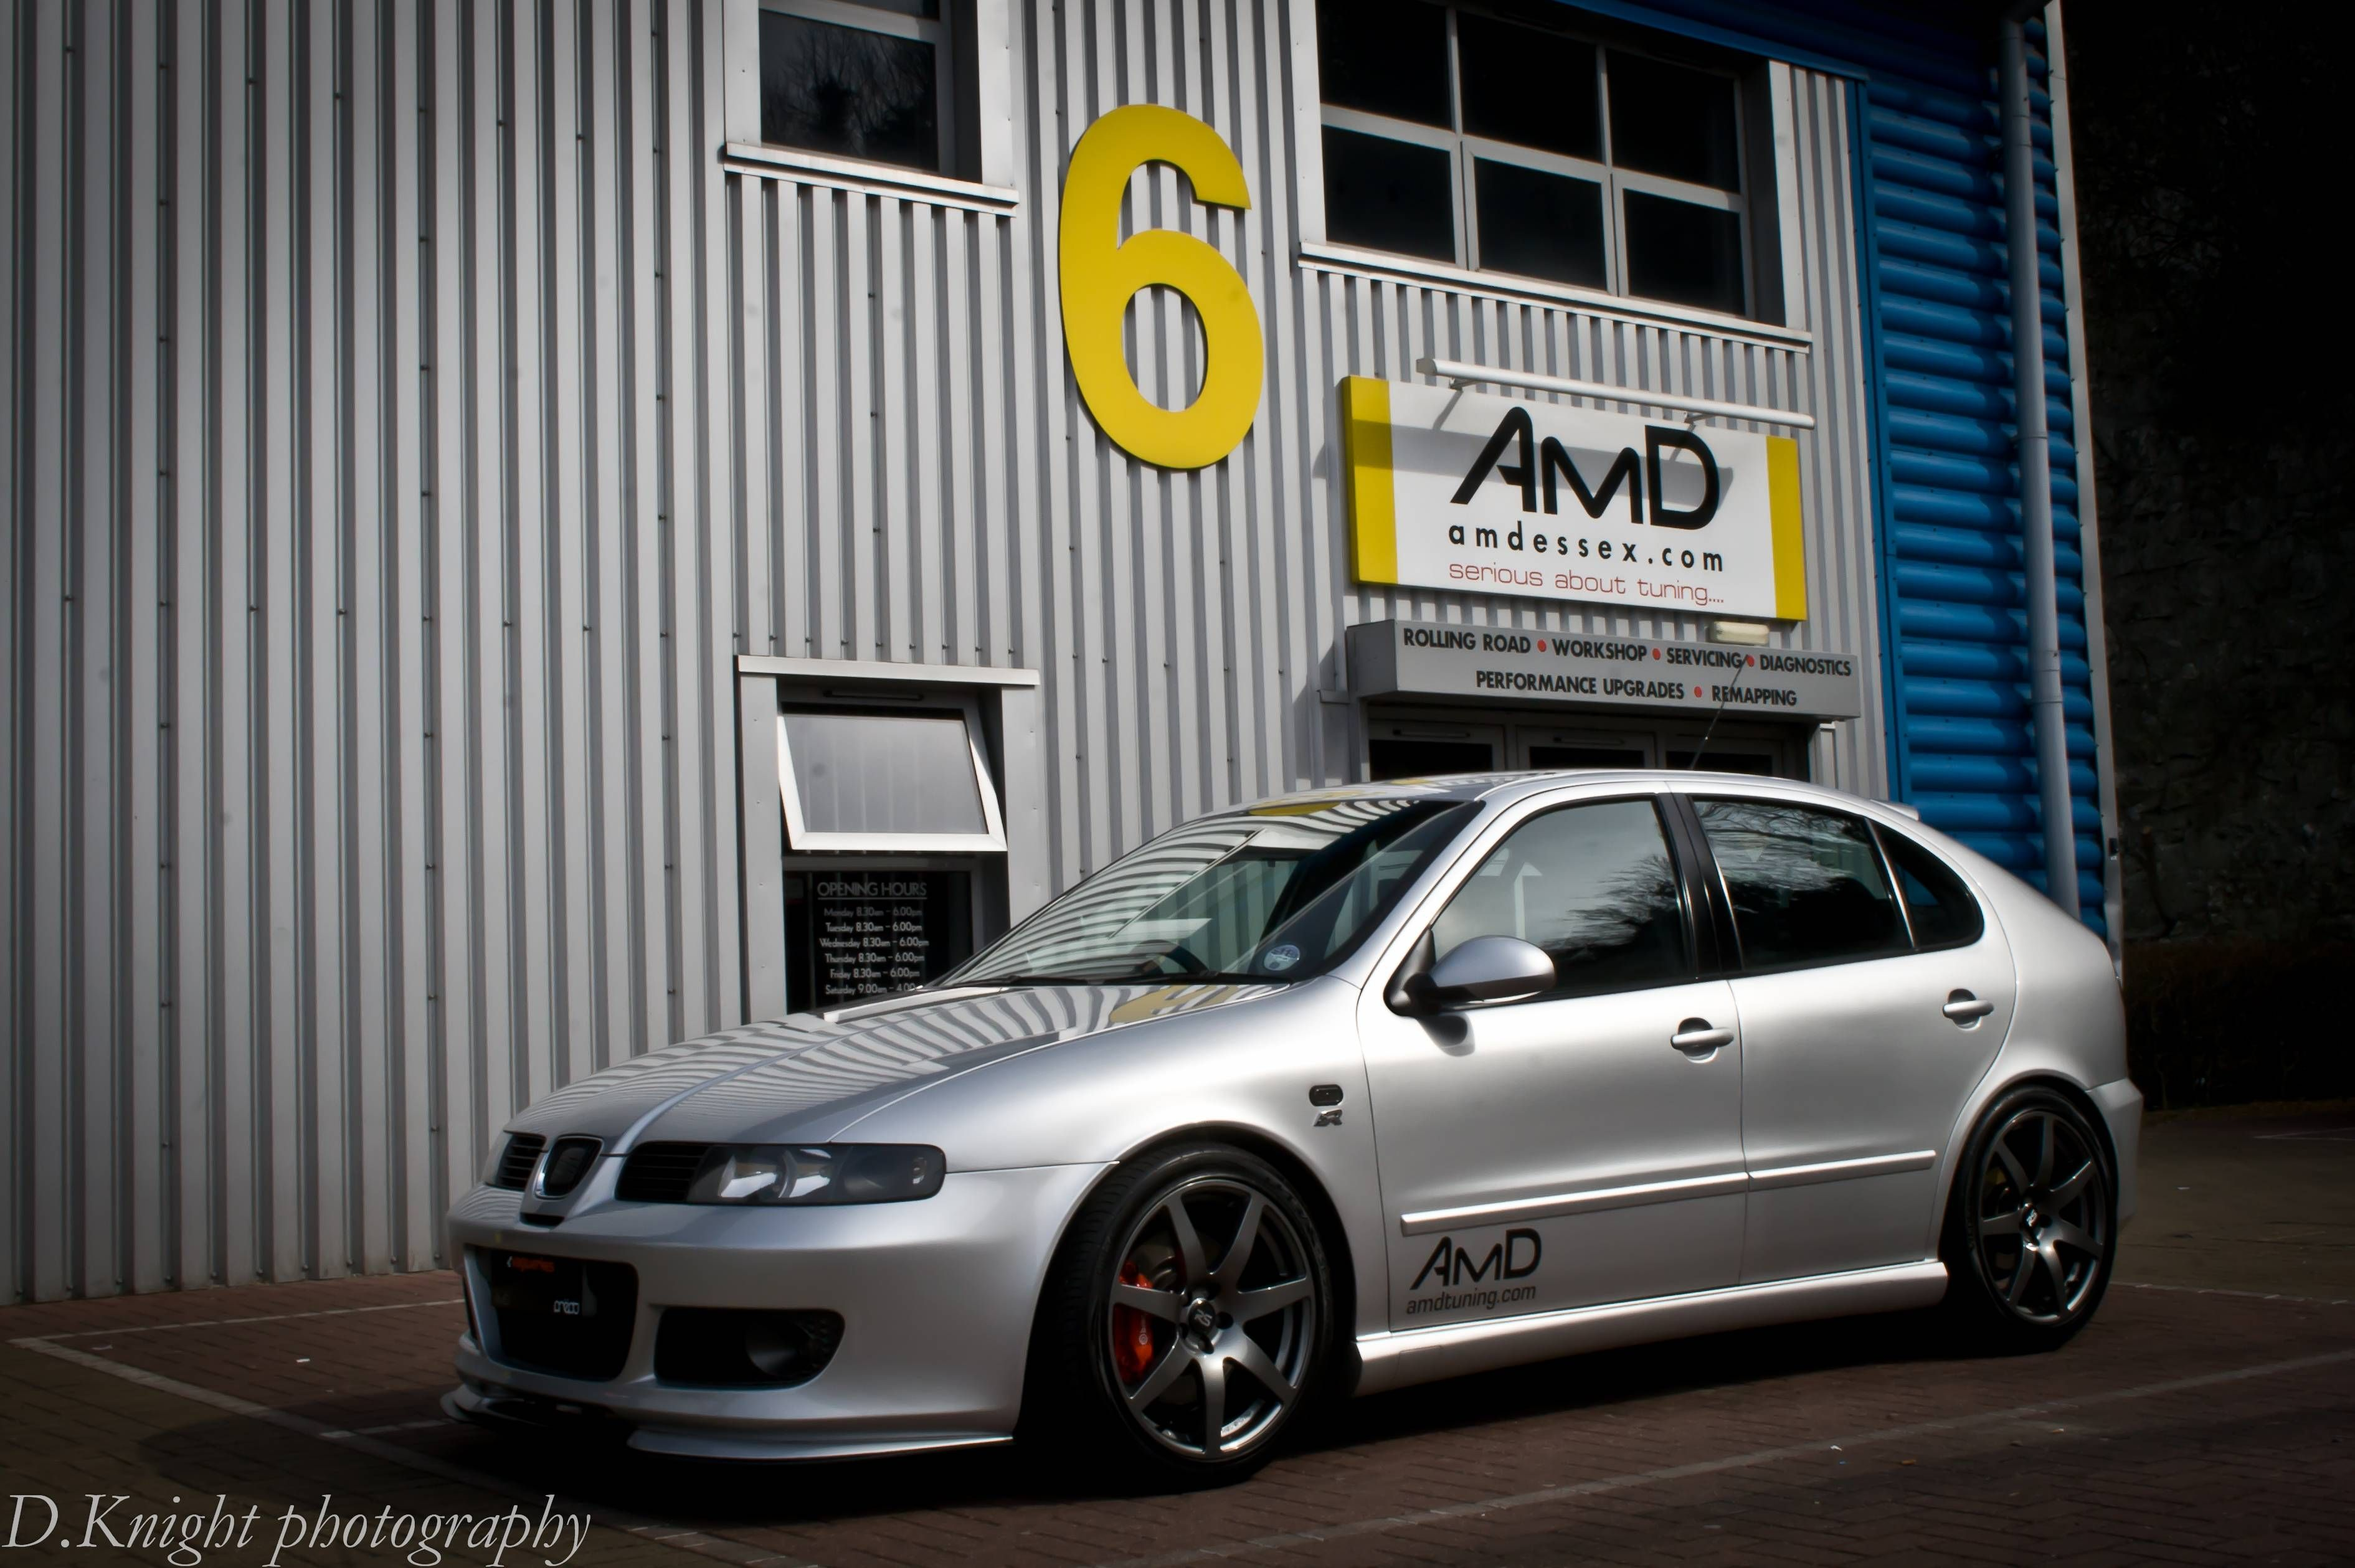 2004 seat leon cupra r 39 1 8 turbo 39 owned by darren knight seat pinterest cars mk1 and. Black Bedroom Furniture Sets. Home Design Ideas